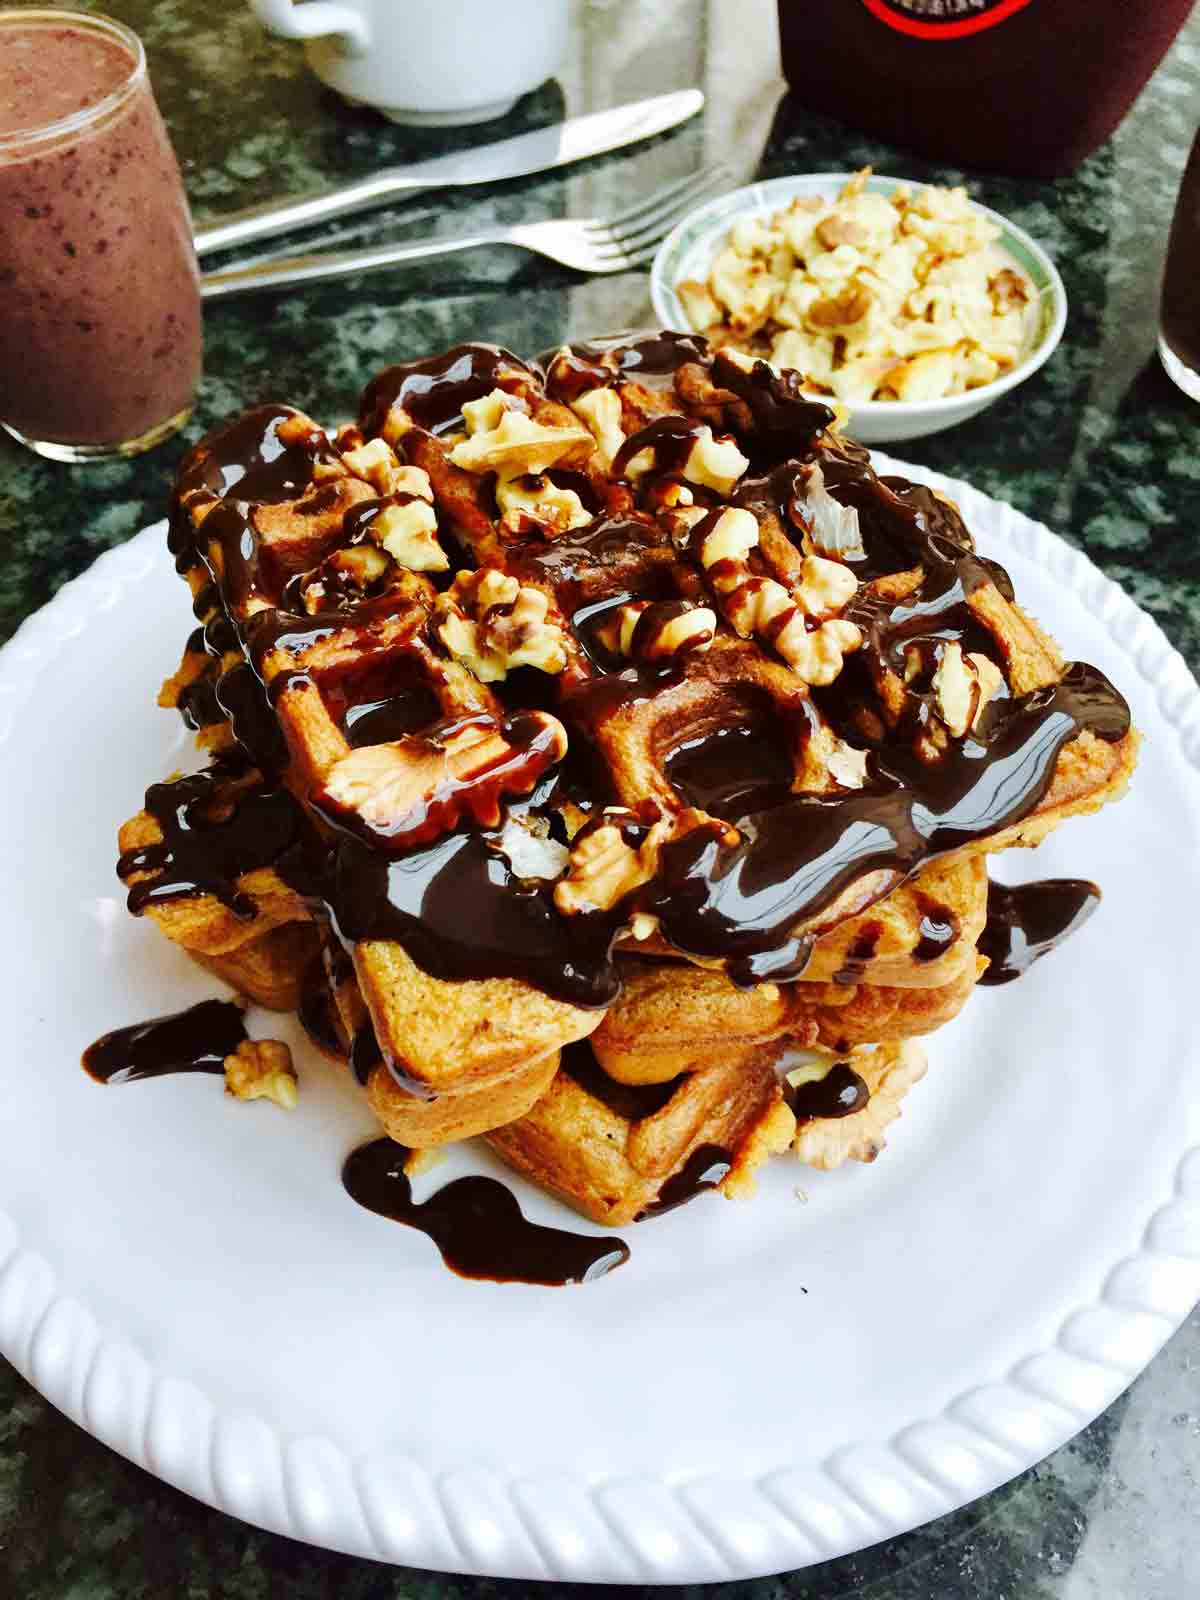 A white plate with scrumptious waffles, all covered in delicious chocolate sauce.